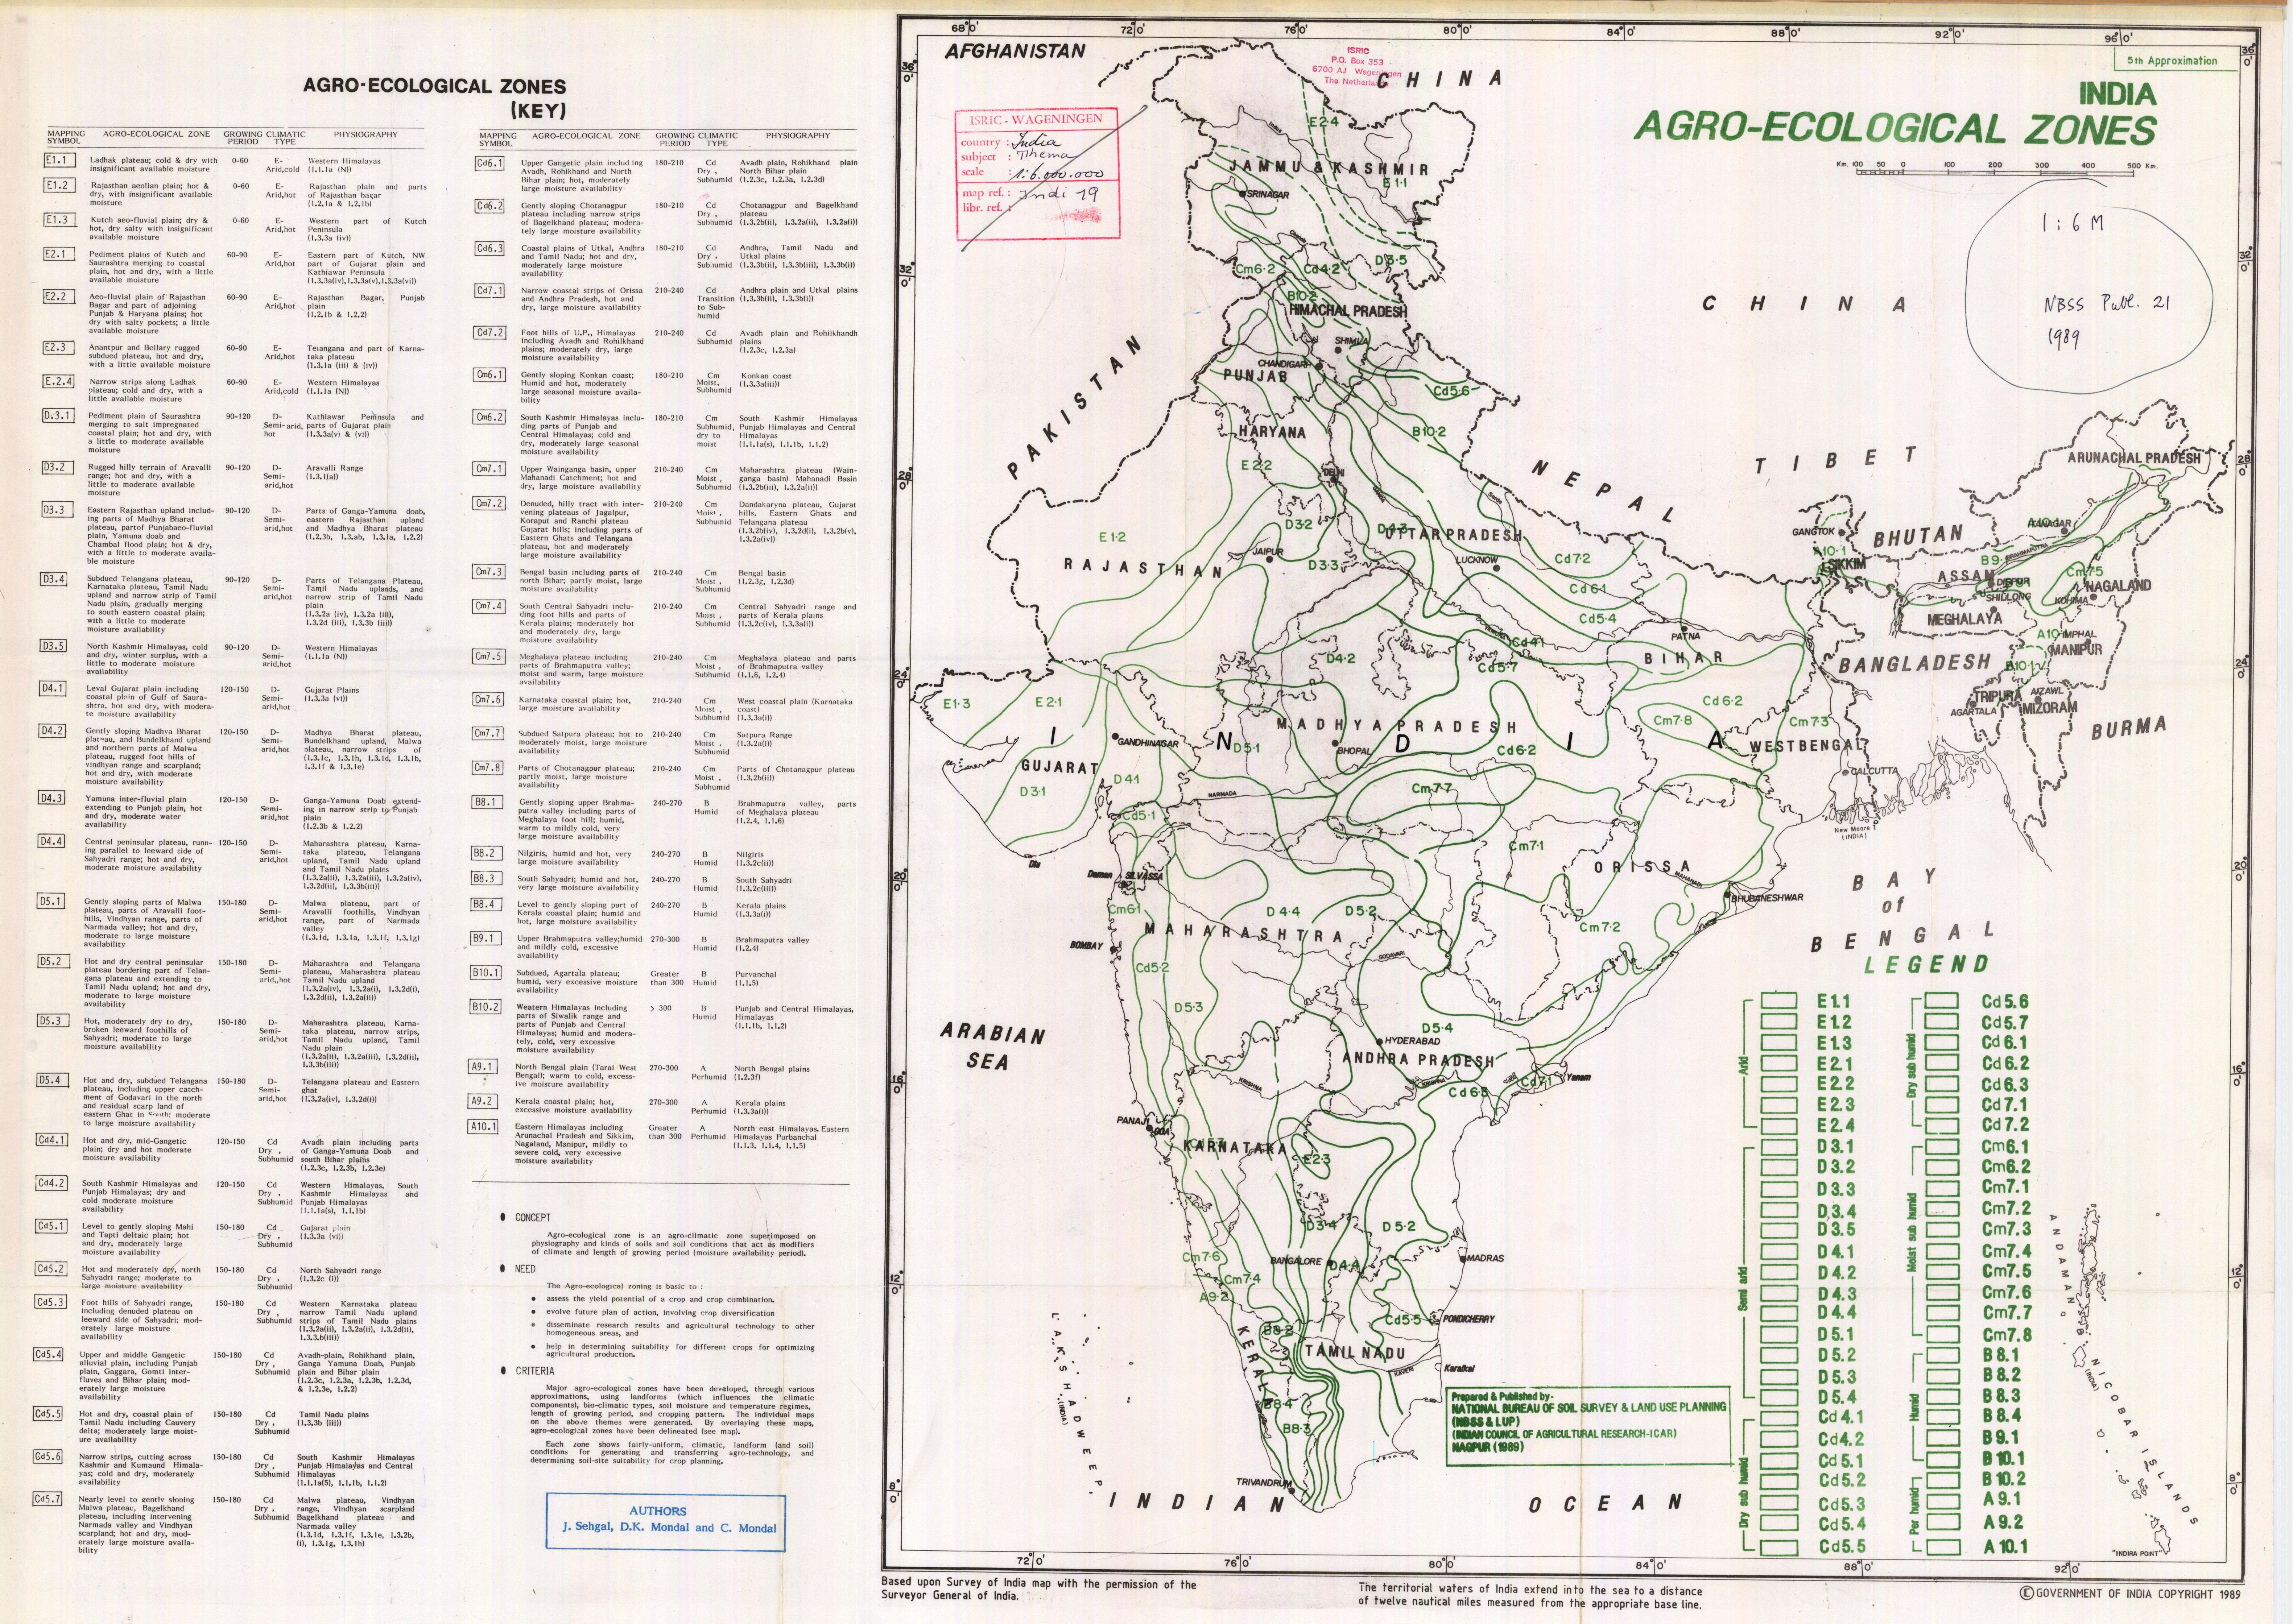 agro eco regions in india Focus was on farmers and agricultural labourers who han- dle pesticides in crops such as paddy, cotton, sugarcane, wheat, apple, pomegranate, mango, grapes and vegetables covering different agro-ecological zones in india primary data were collected from farmers, agricultural labourers, pesticide vendors and.